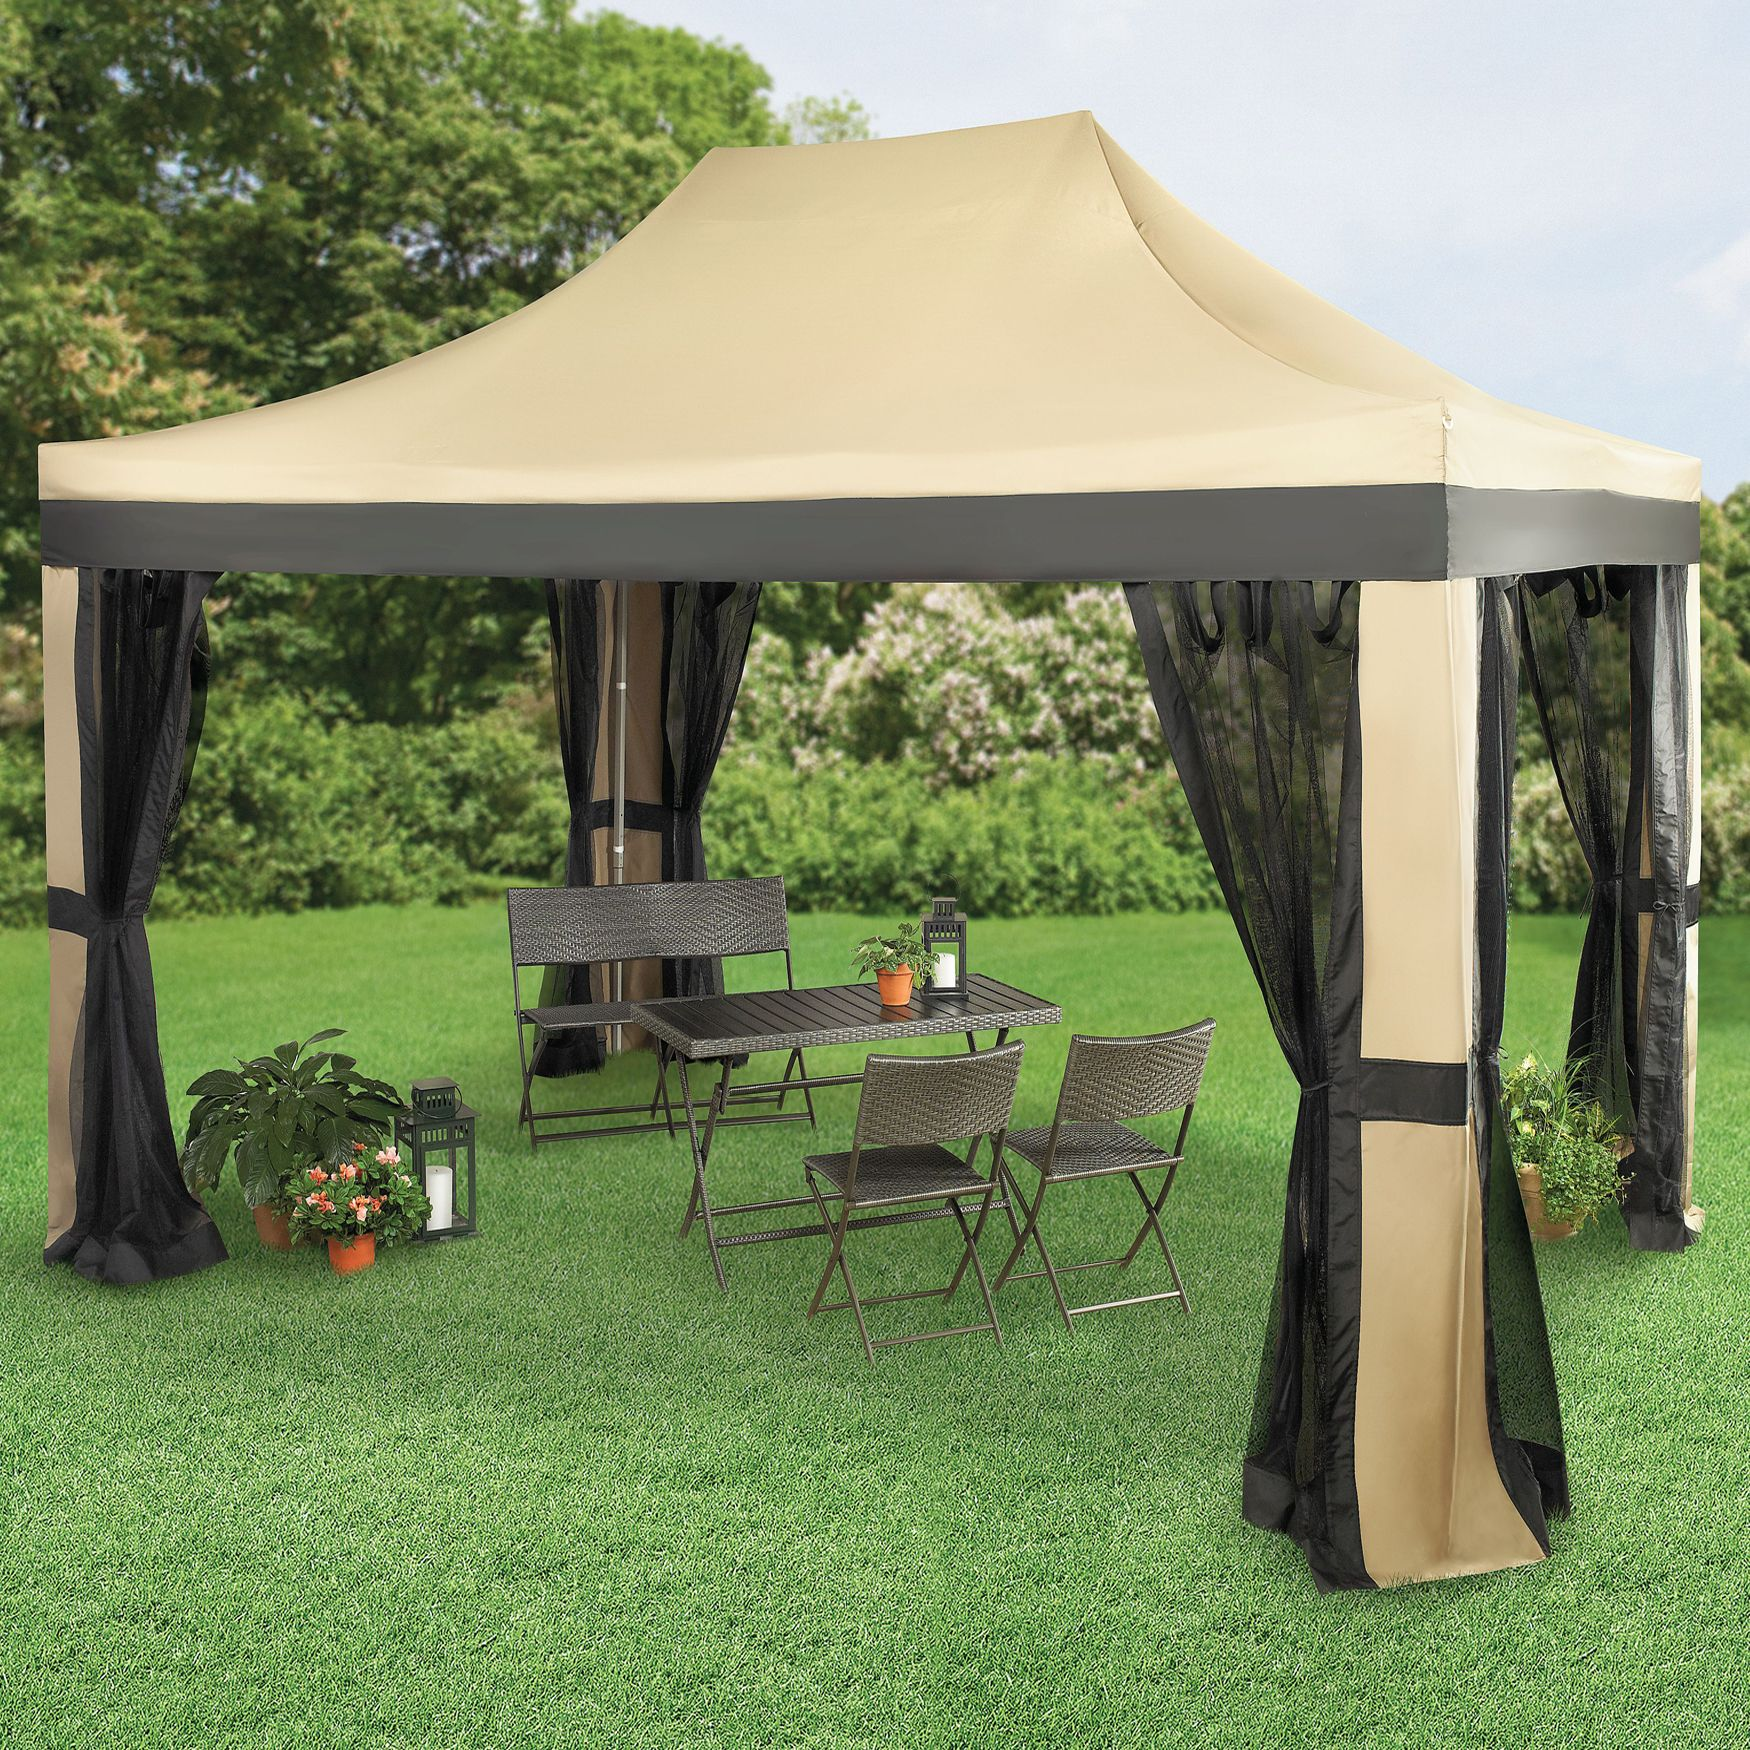 Oversized 10u0027 x 15u0027 Instant Pop Up Gazebo With Screen | Gazebos u0026 Umbrellas & Oversized 10u0027 x 15u0027 Instant Pop Up Gazebo With Screen | Gazebos ...